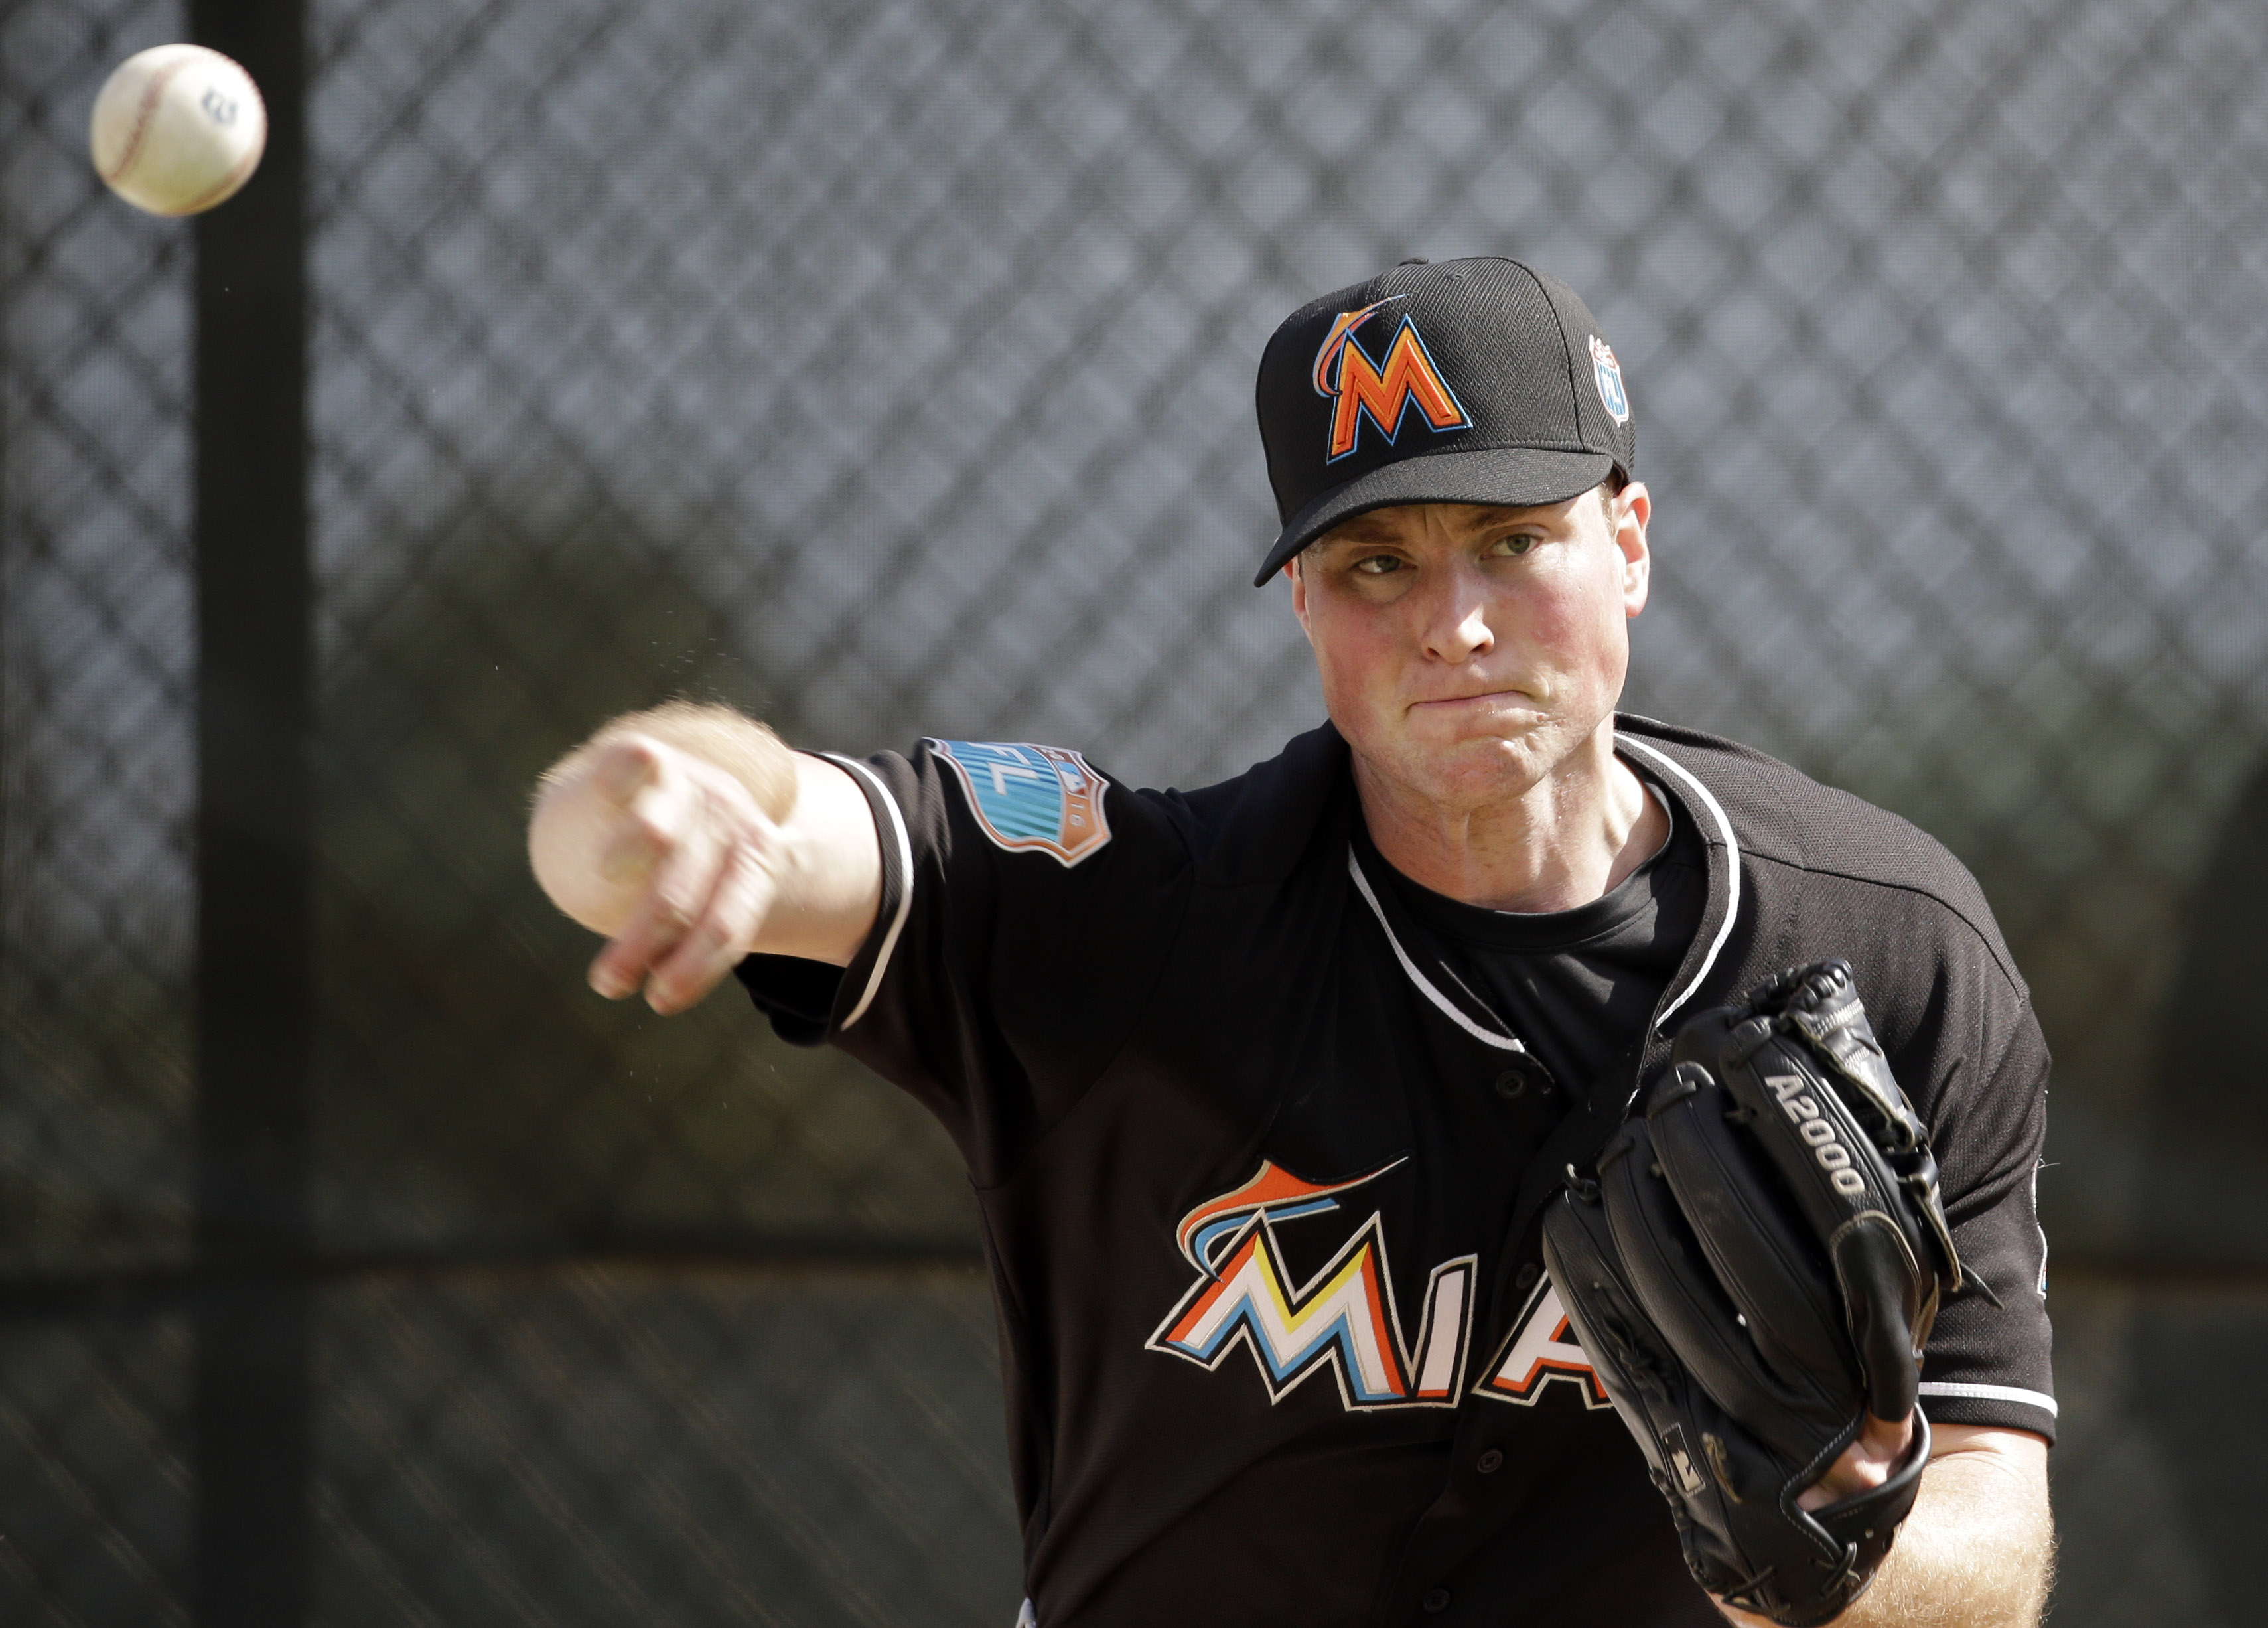 FILE - In this Feb. 22, 2016, file photo, Miami Marlins pitcher Carter Capps throws a bullpen session during spring training baseball practice in Jupiter, Fla. Miami Marlins reliever Carter Capps has a torn ligament in his throwing elbow that requires Tom